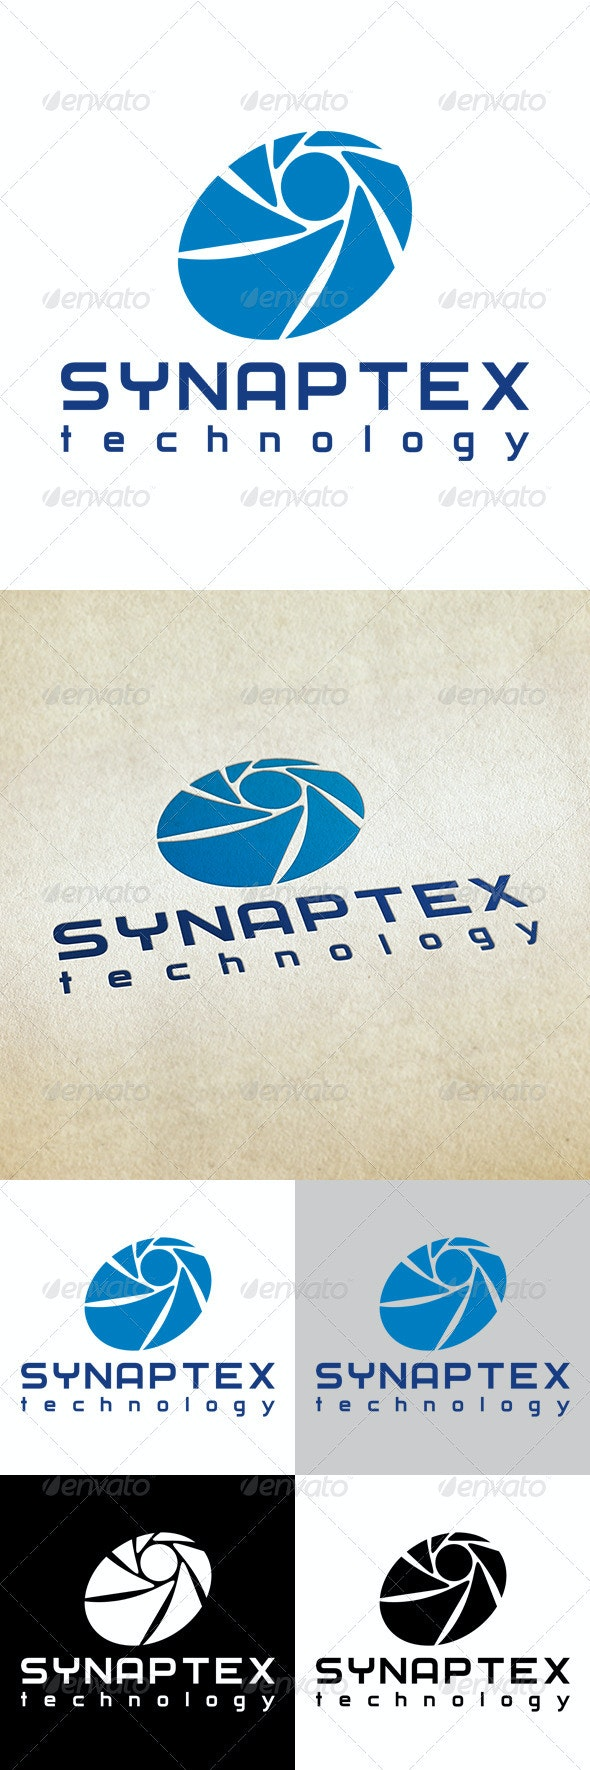 Synaptex Technology - Abstract Logo Templates